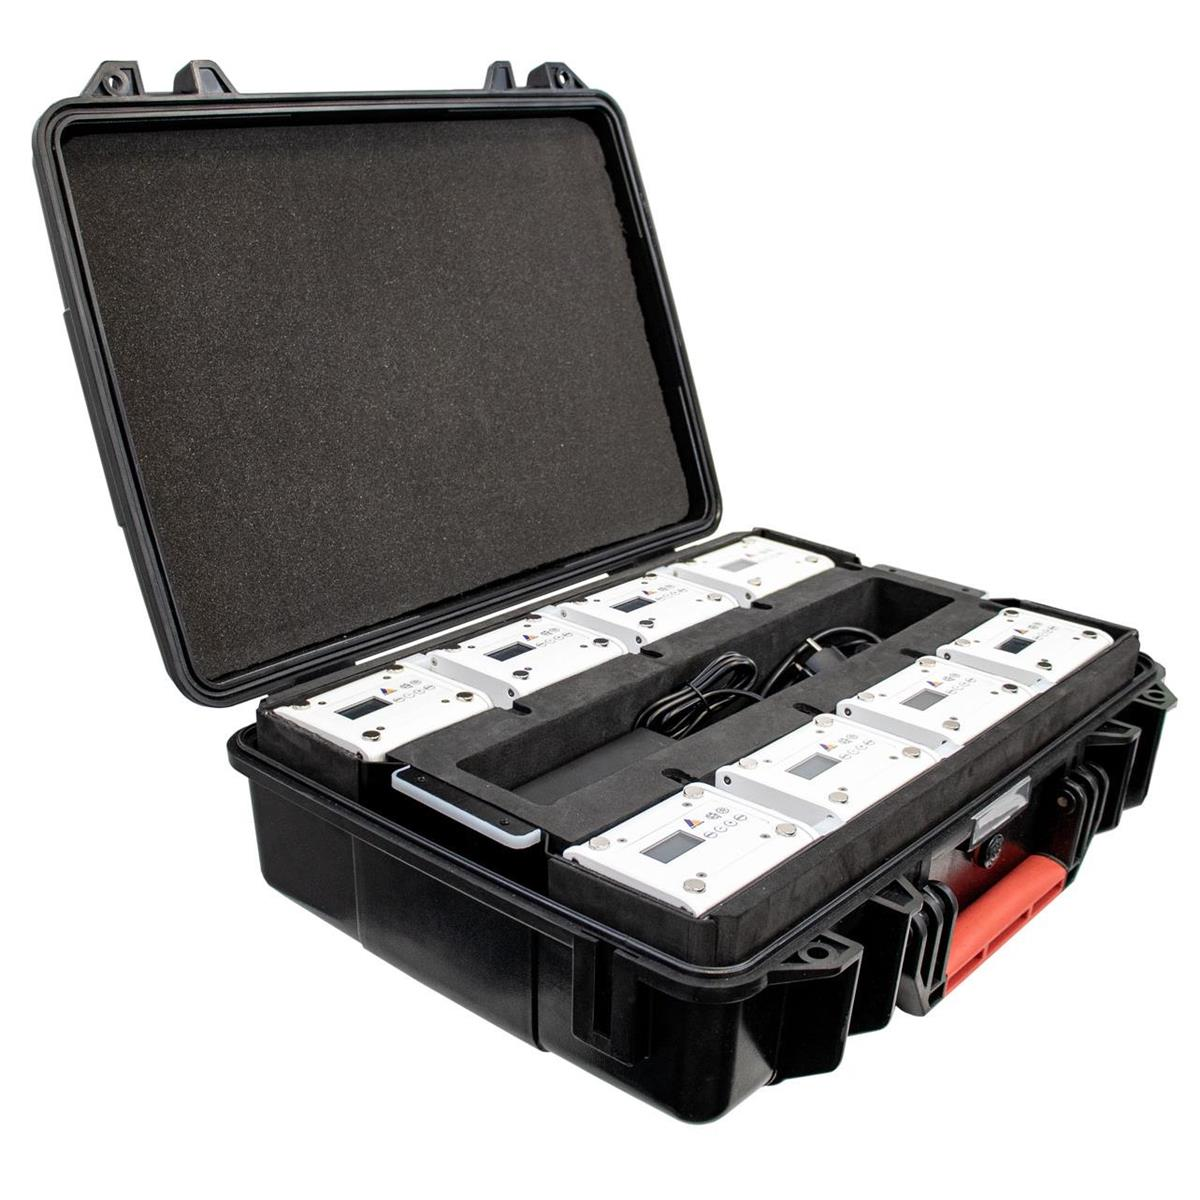 Astera FP5-PS-Set (8x) PowerStation Set with Case